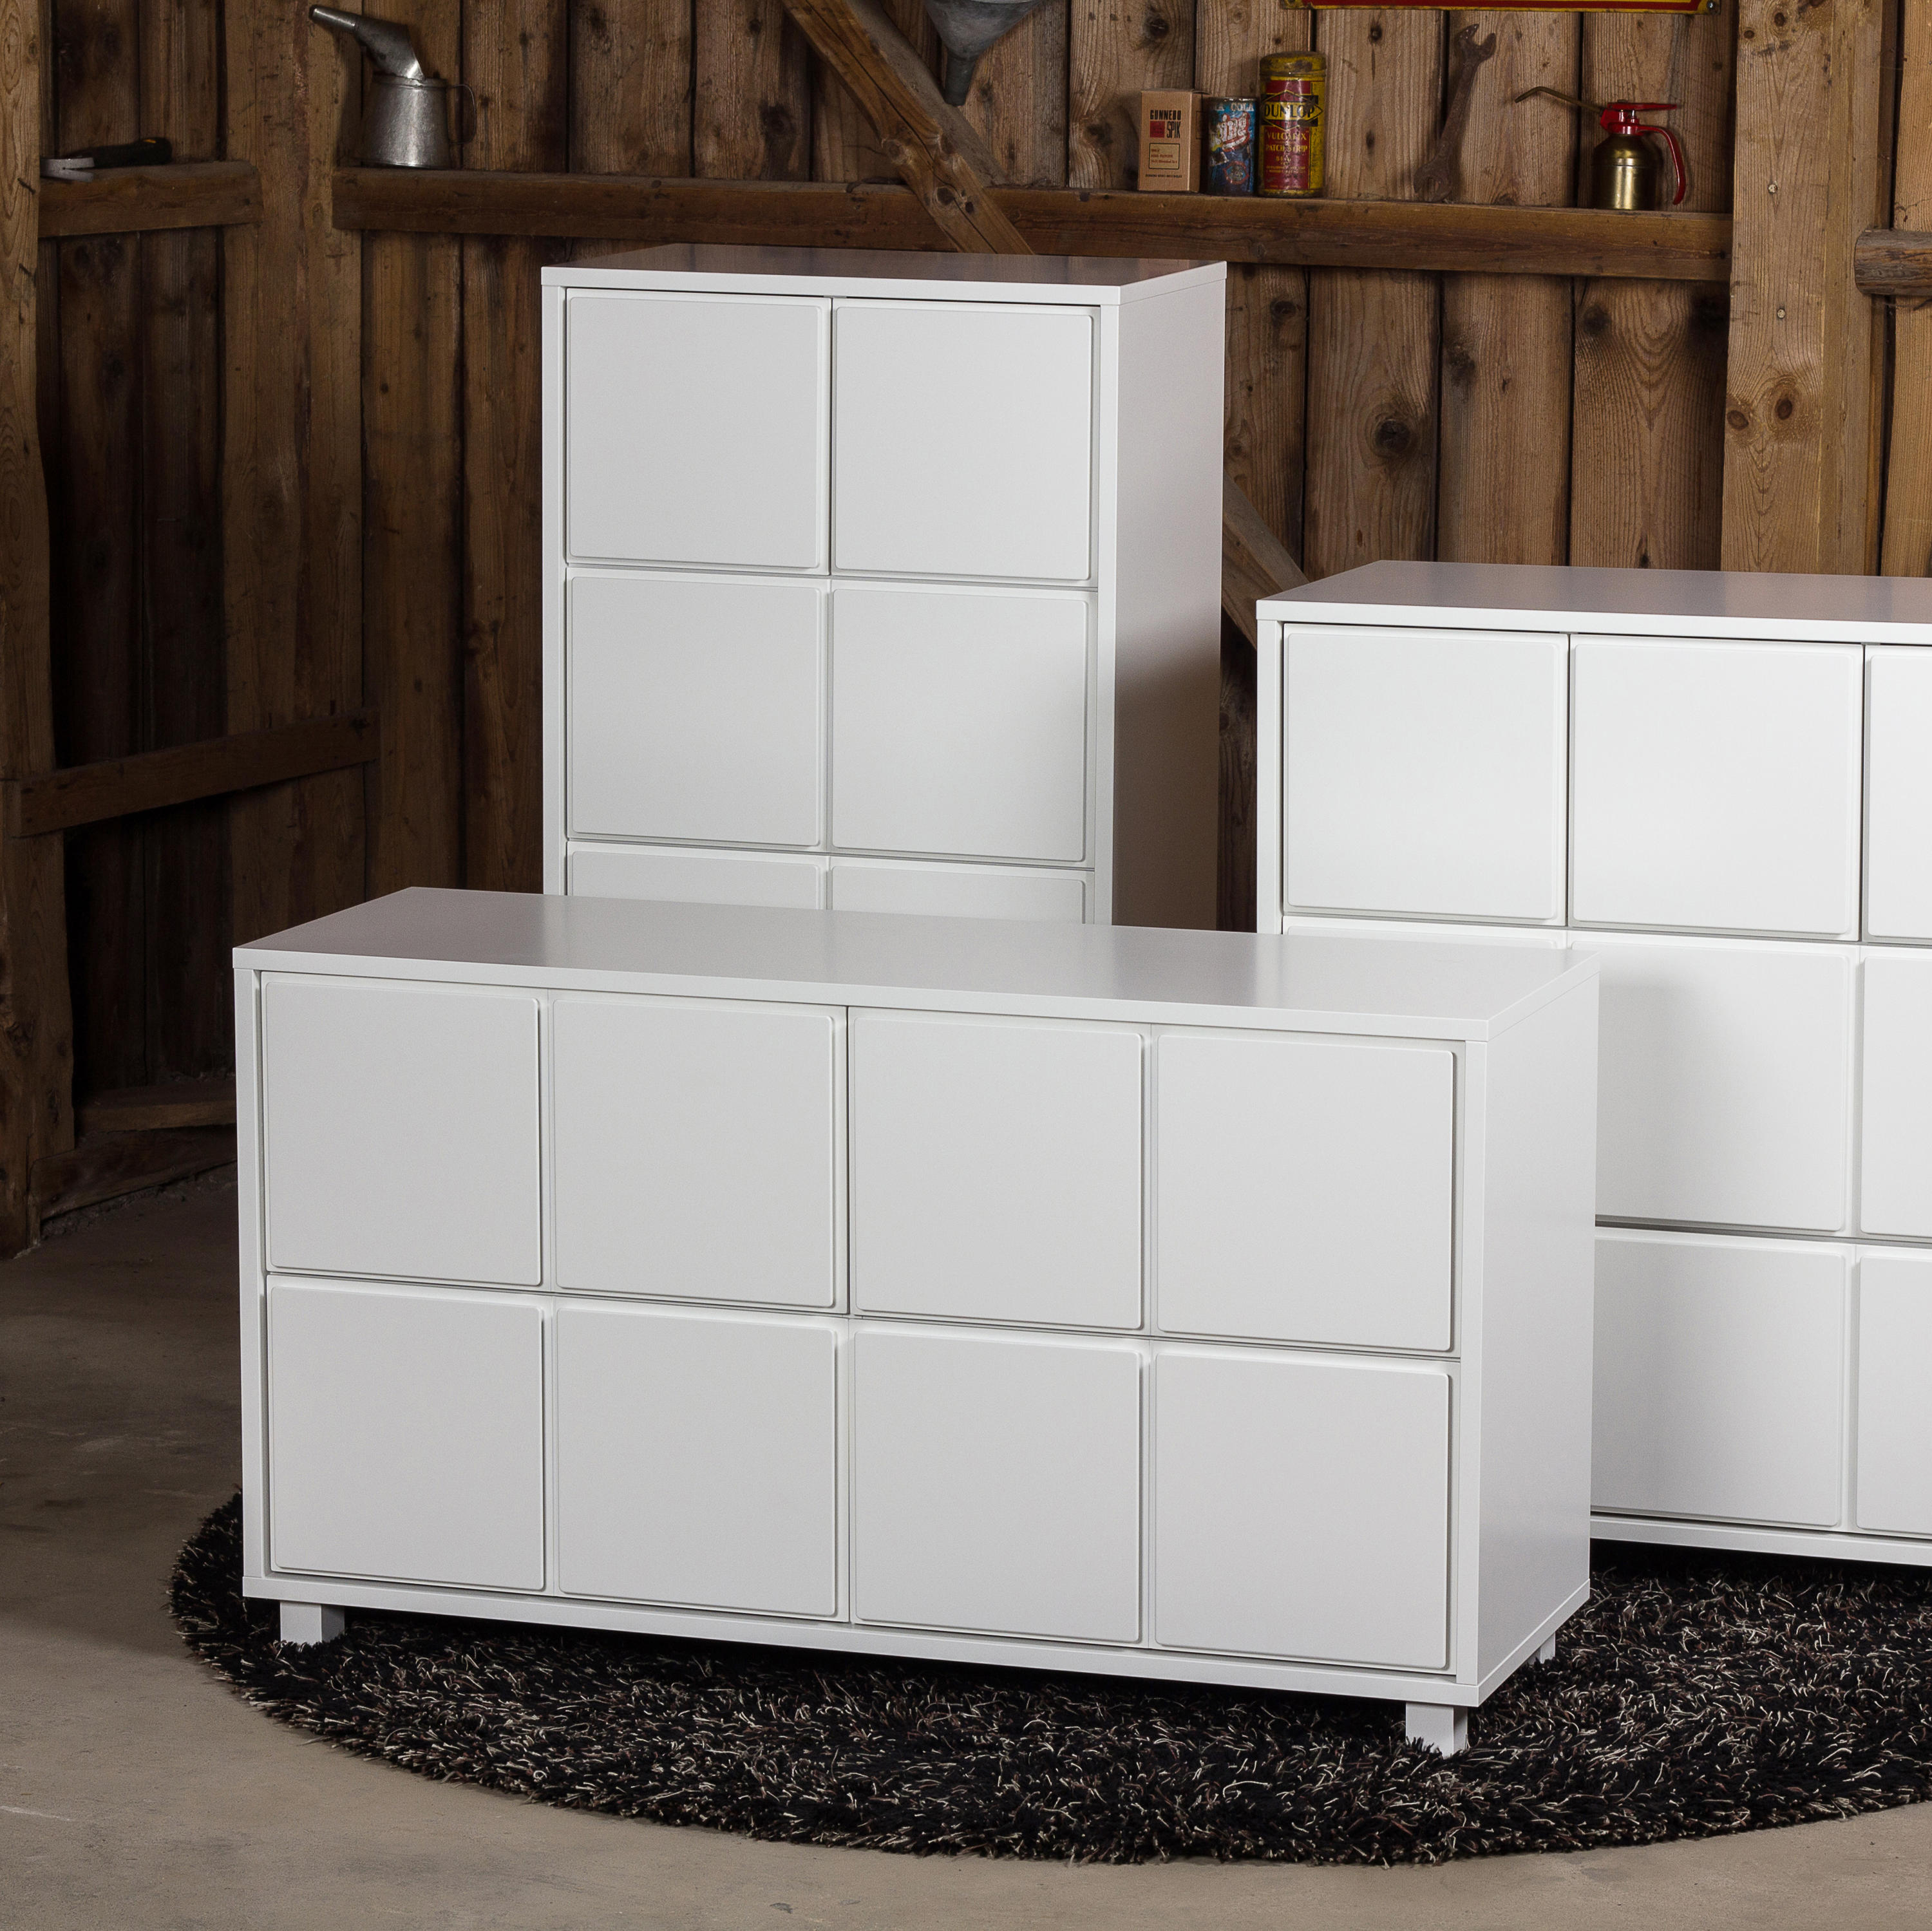 Drawer 1, White – Sideboards / Kommoden Von Scherlin Pertaining To Thite Sideboards (Gallery 14 of 30)